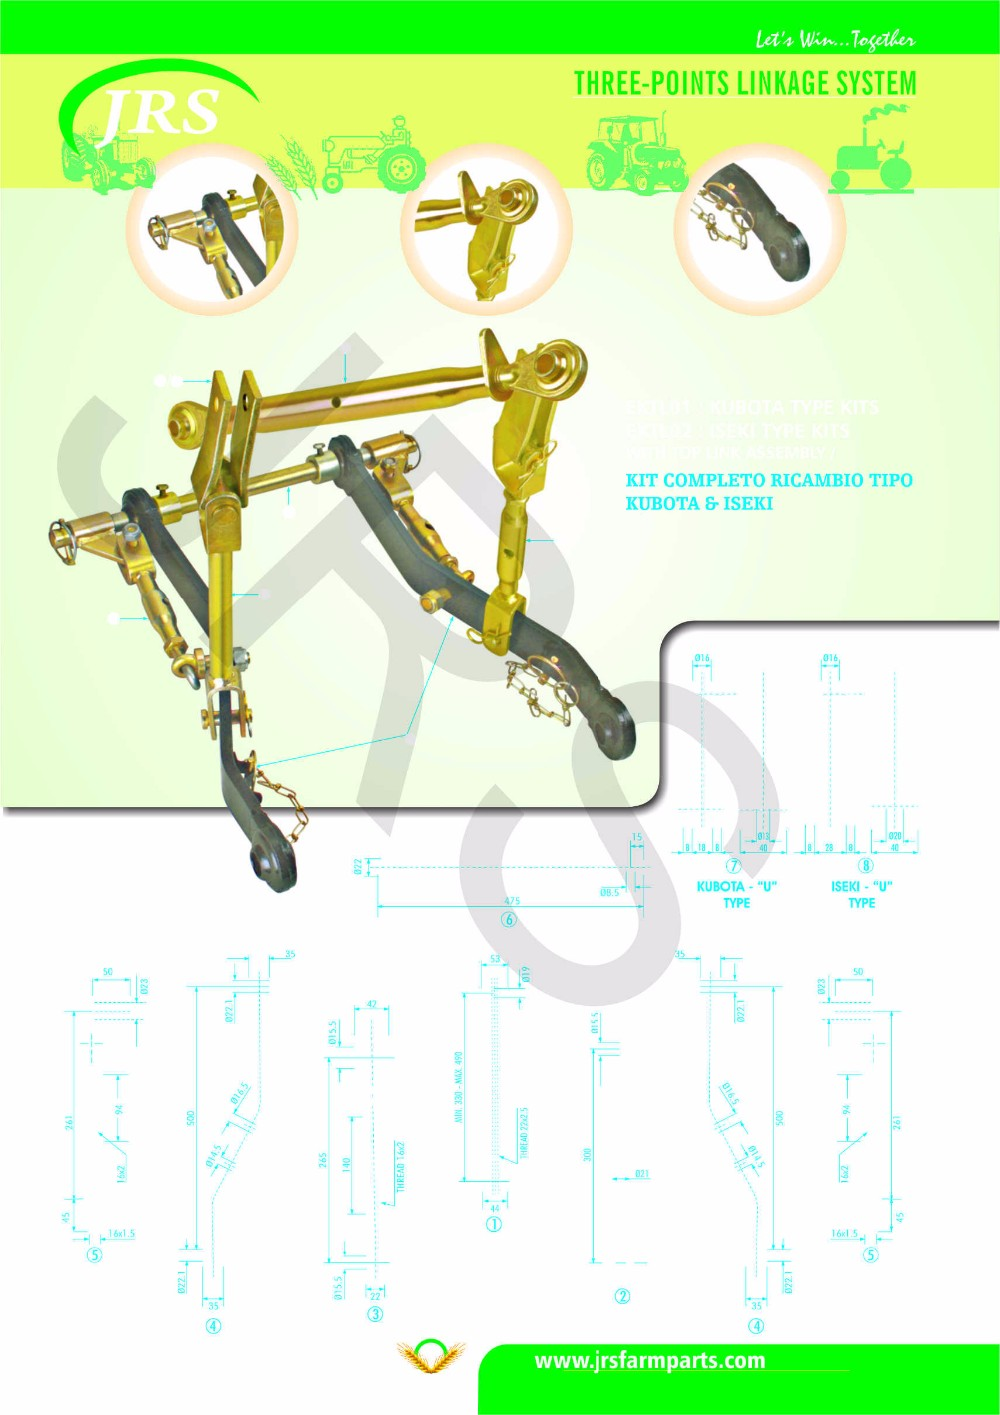 Best Consistancy Product Company of Linkage kit